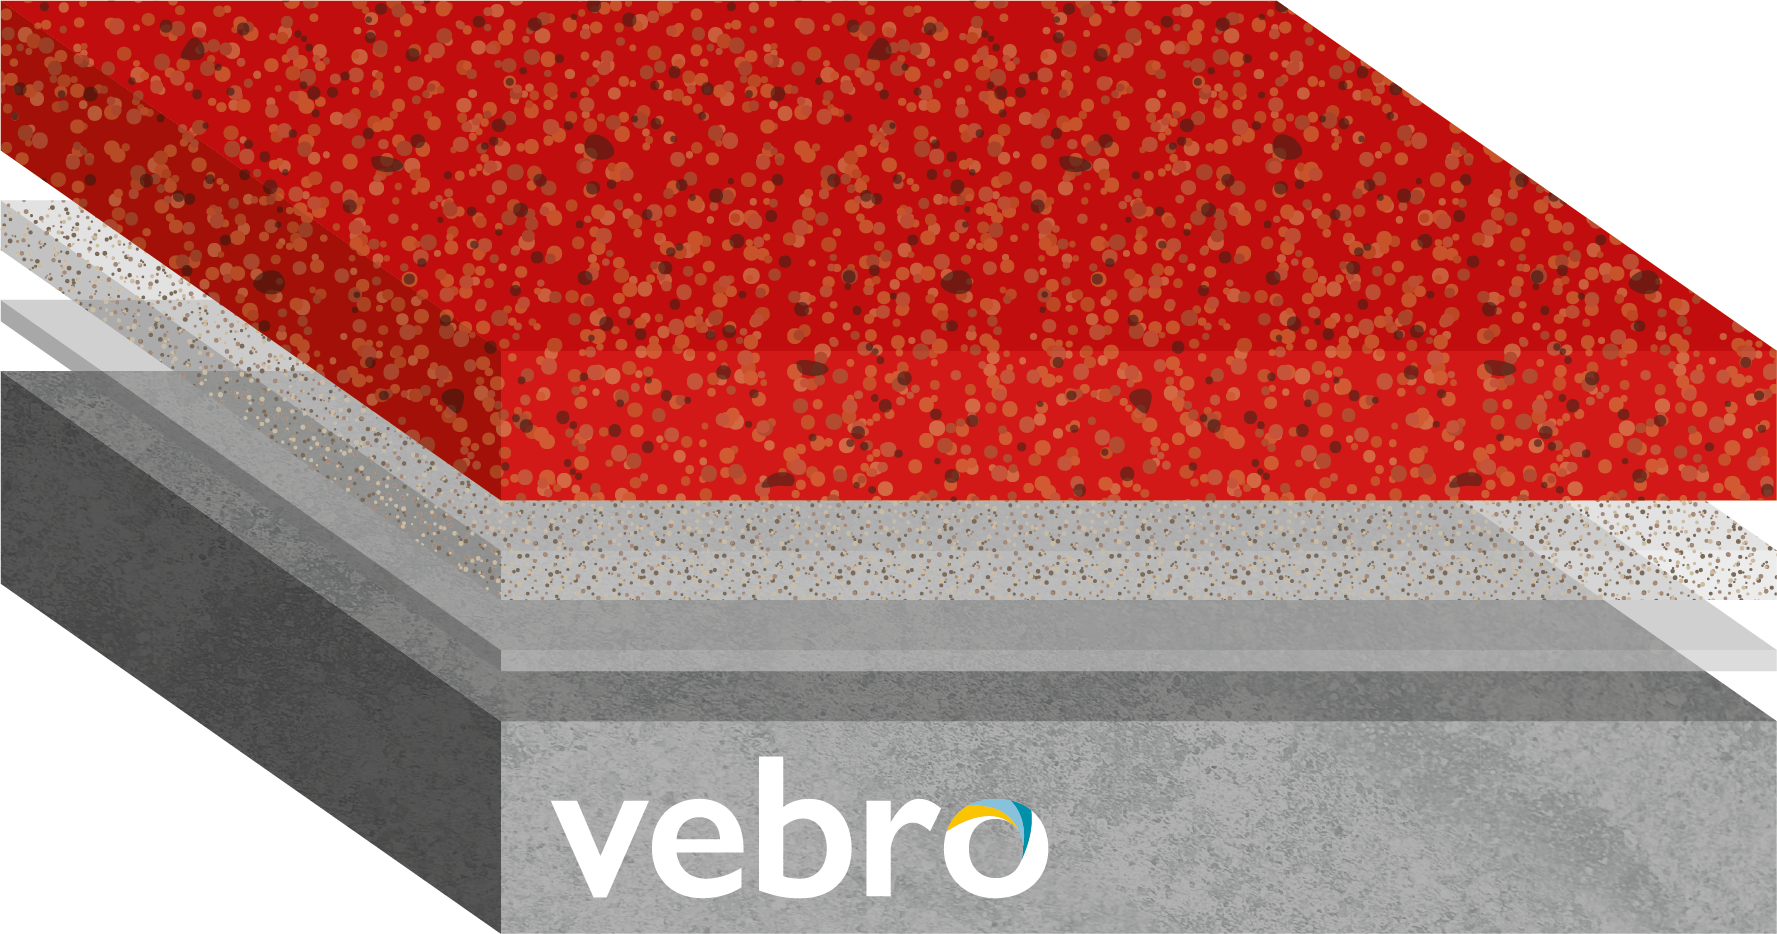 vebrores Compact (Industrial) (RAL 3020 Traffic Red)